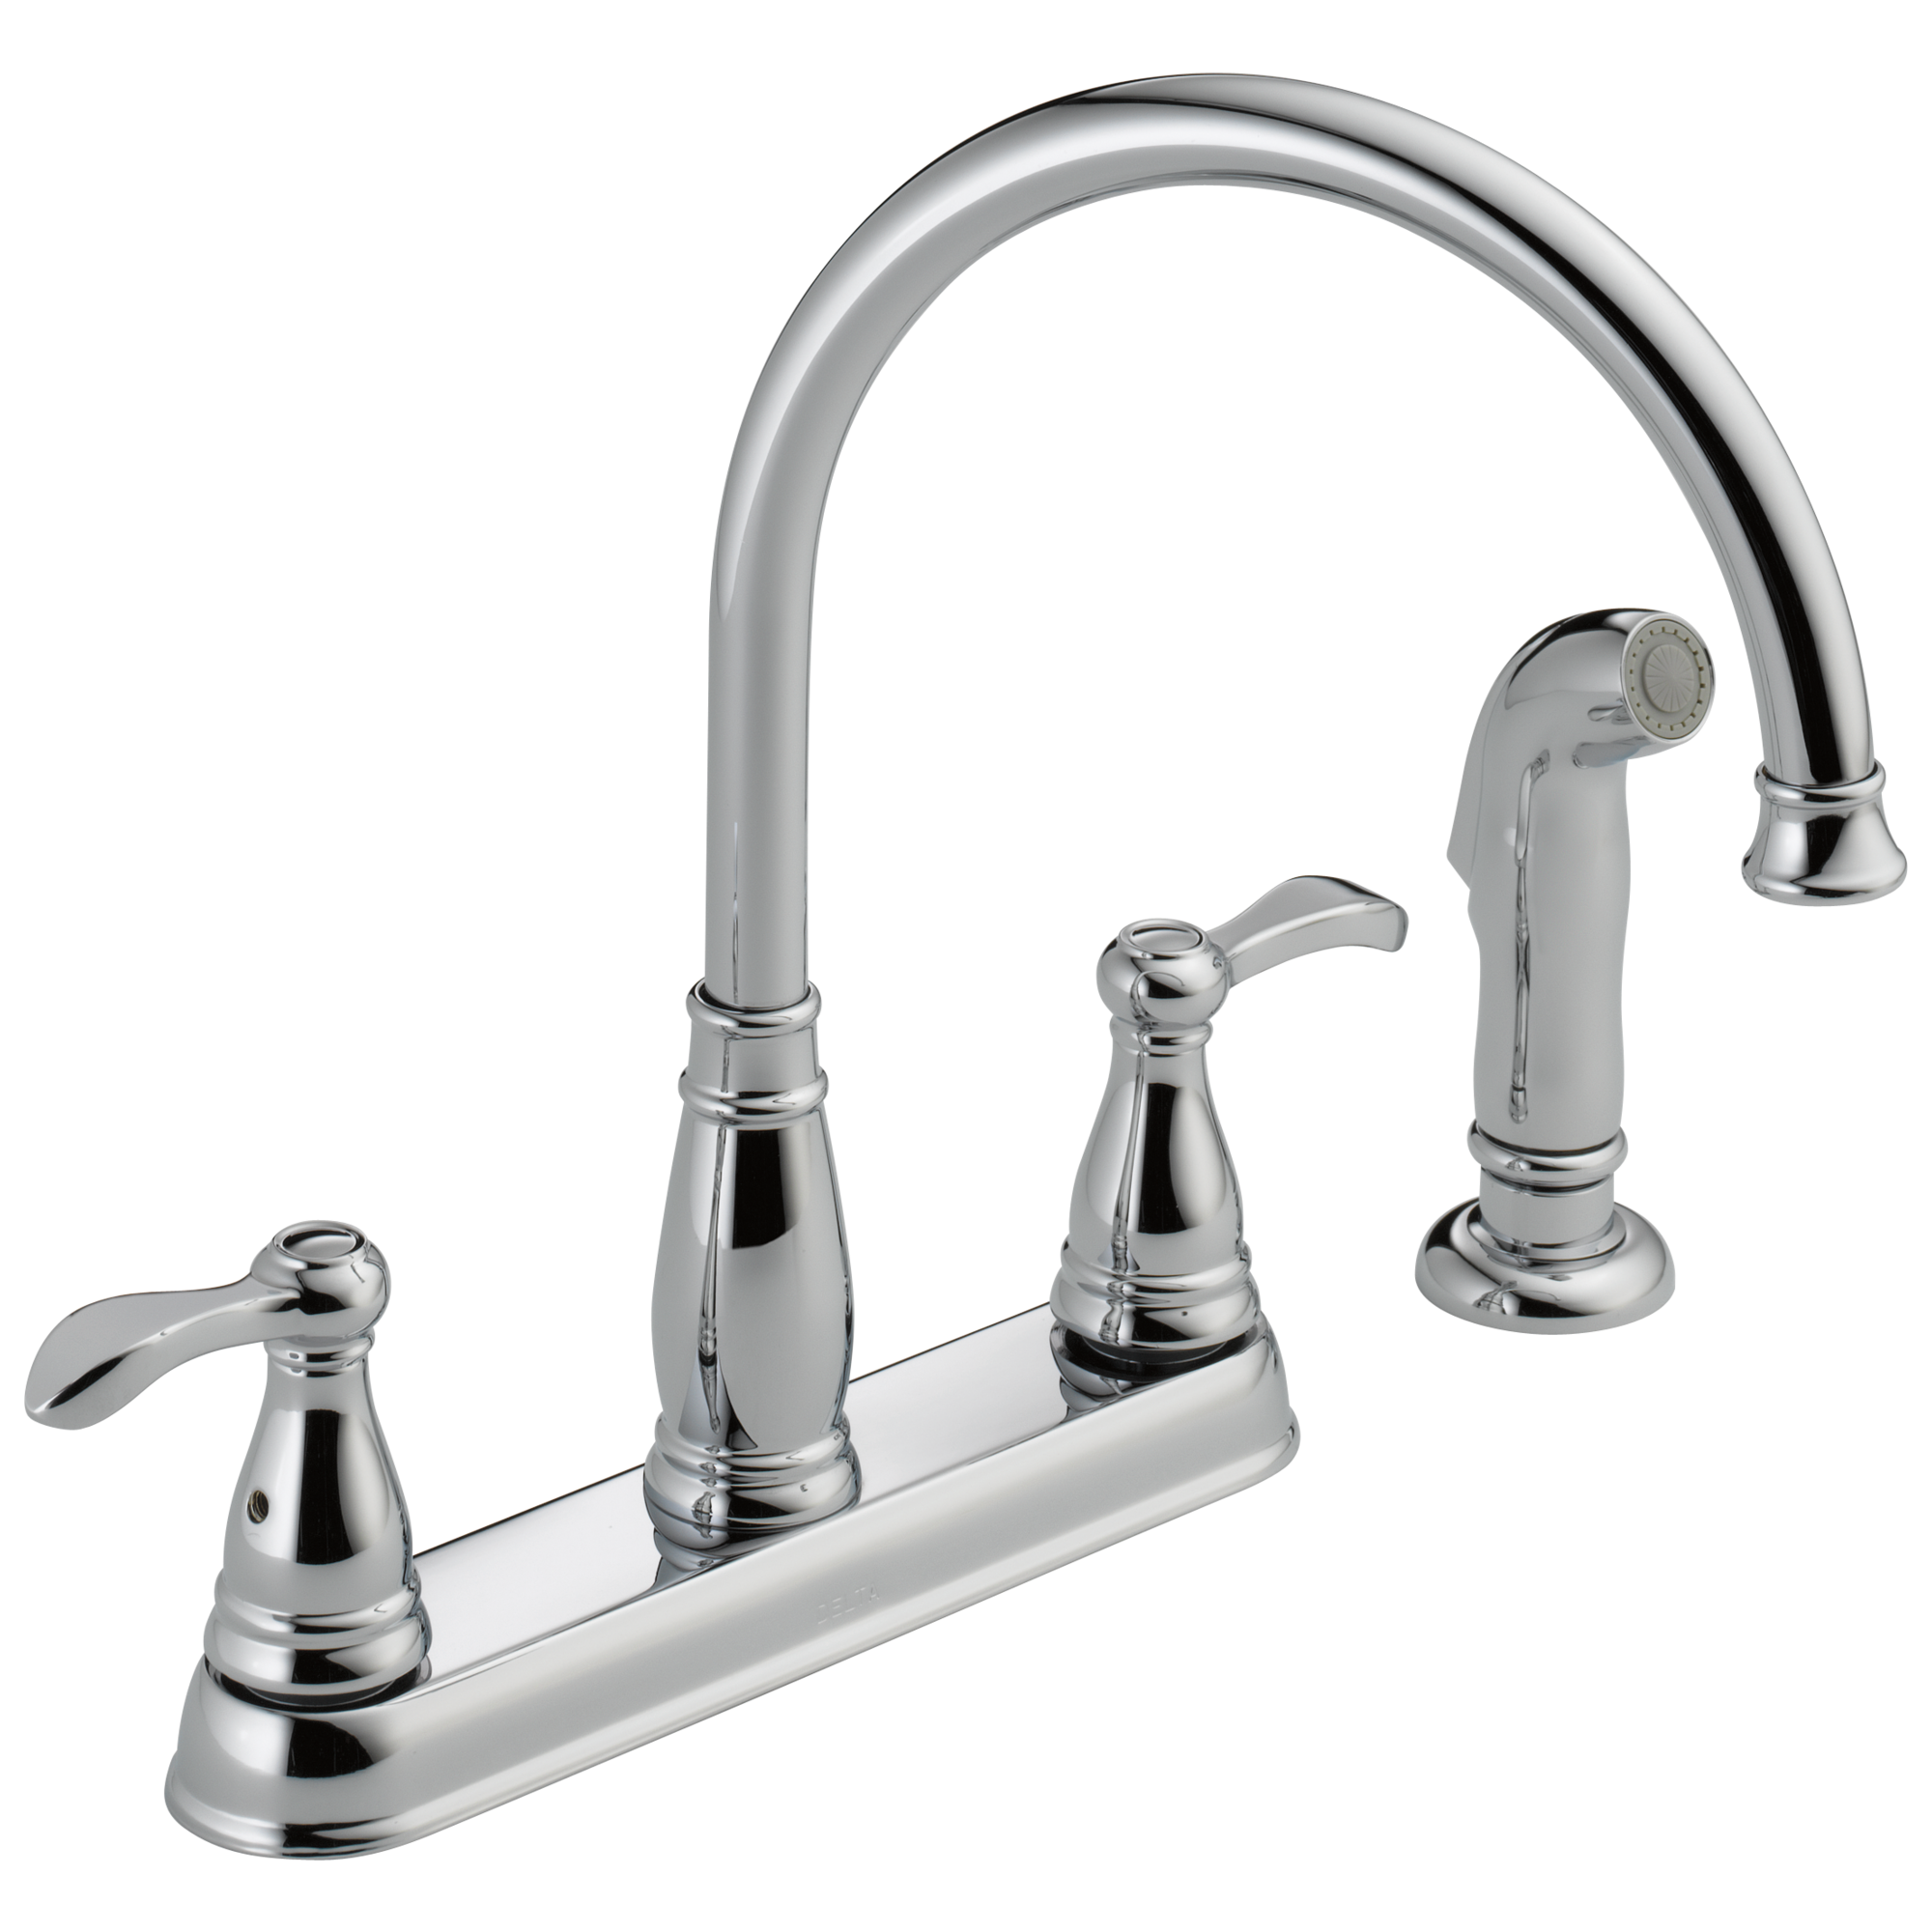 21984lf two handle kitchen faucet with spray download high resolution image